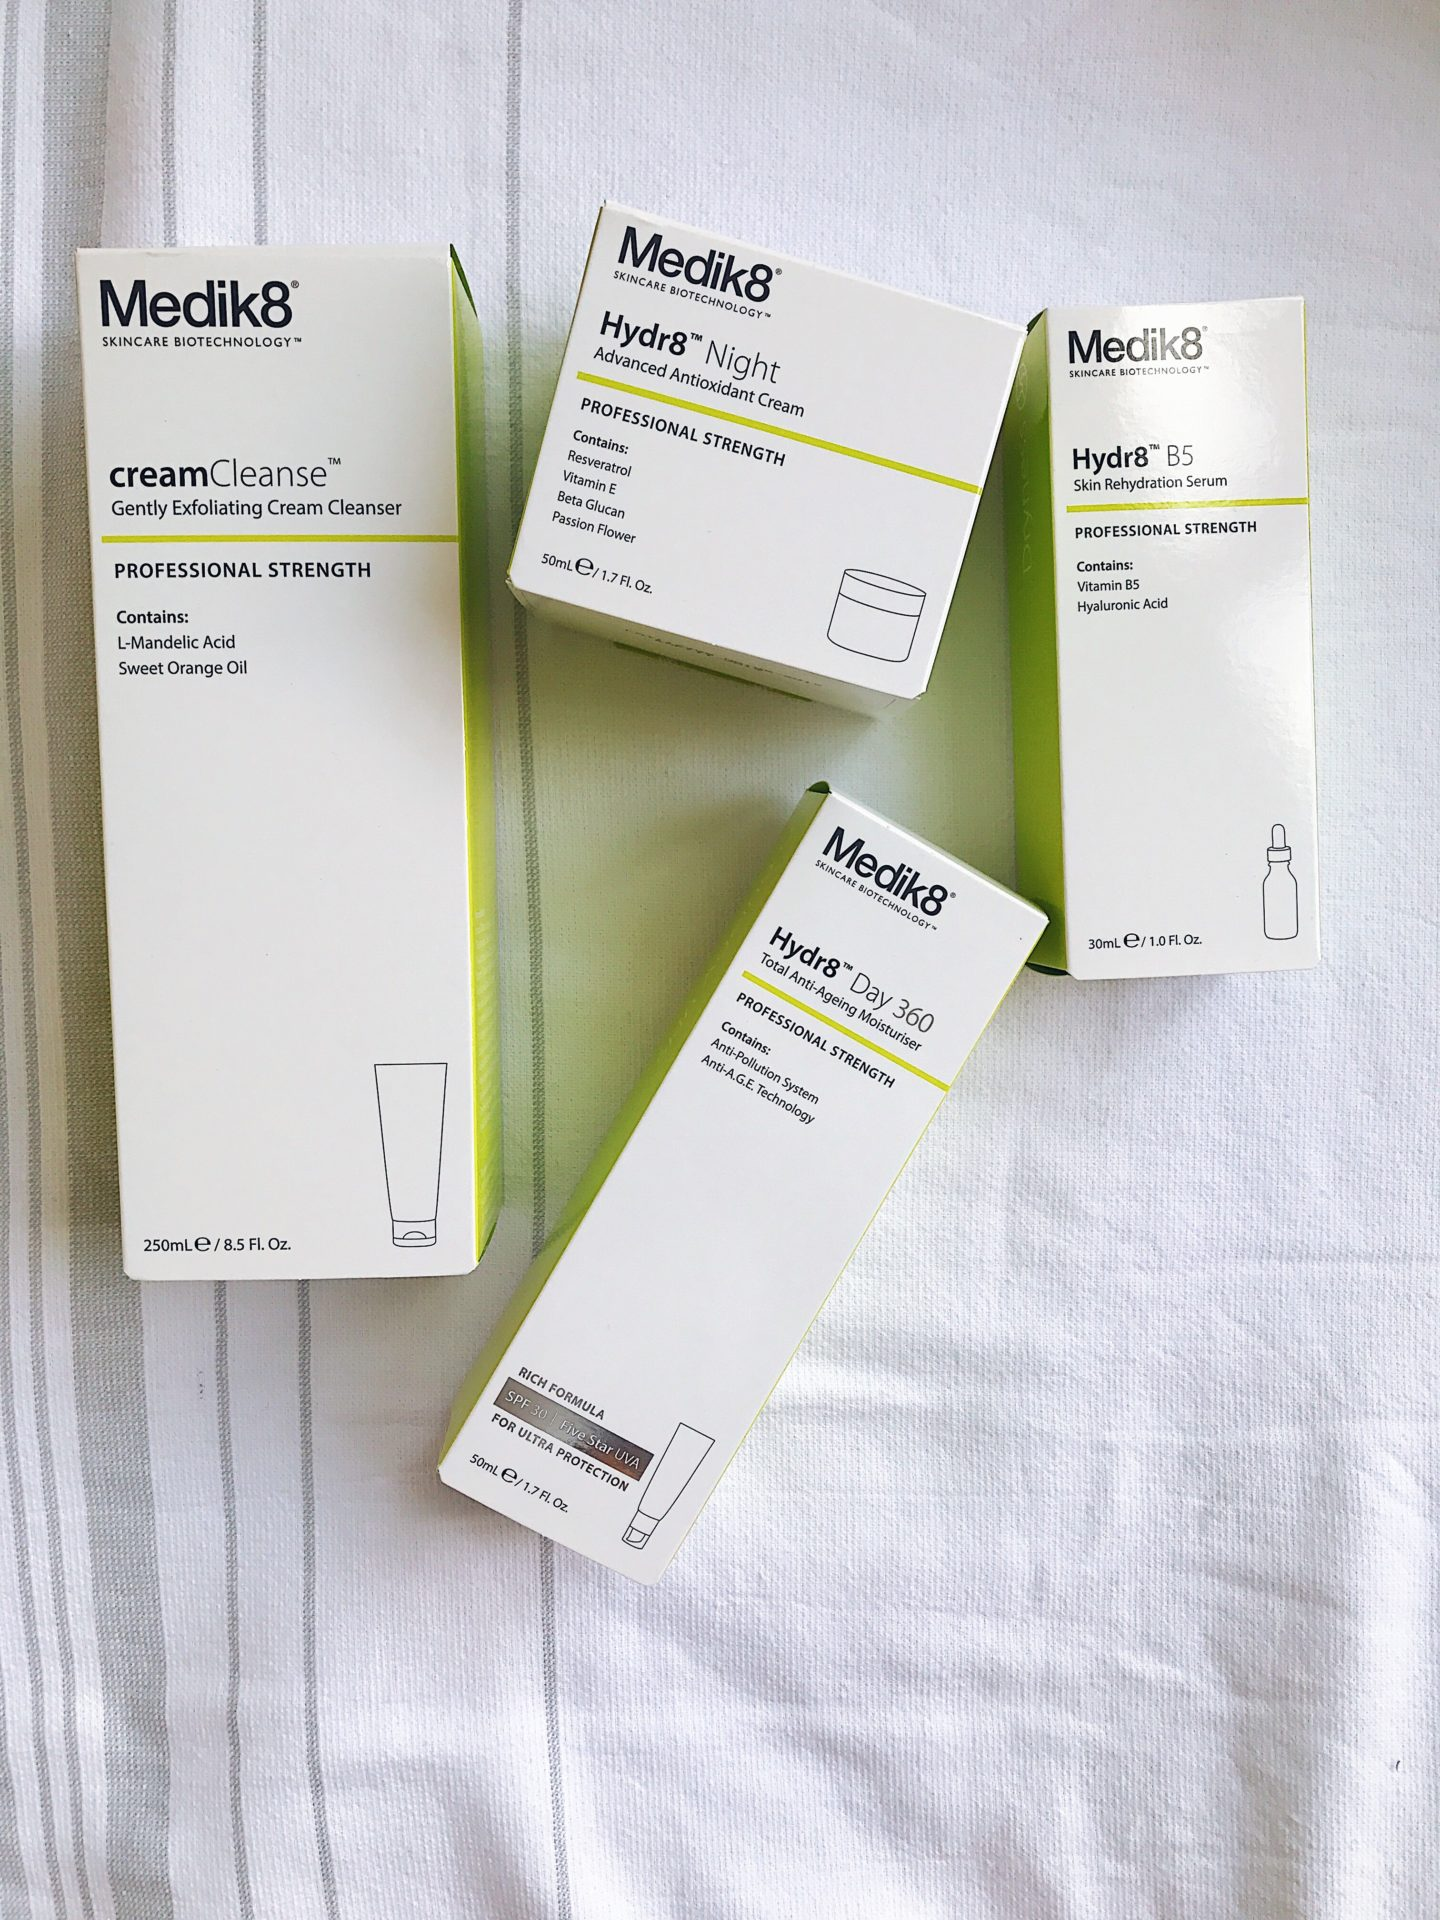 Medik8 Skin Care Routine